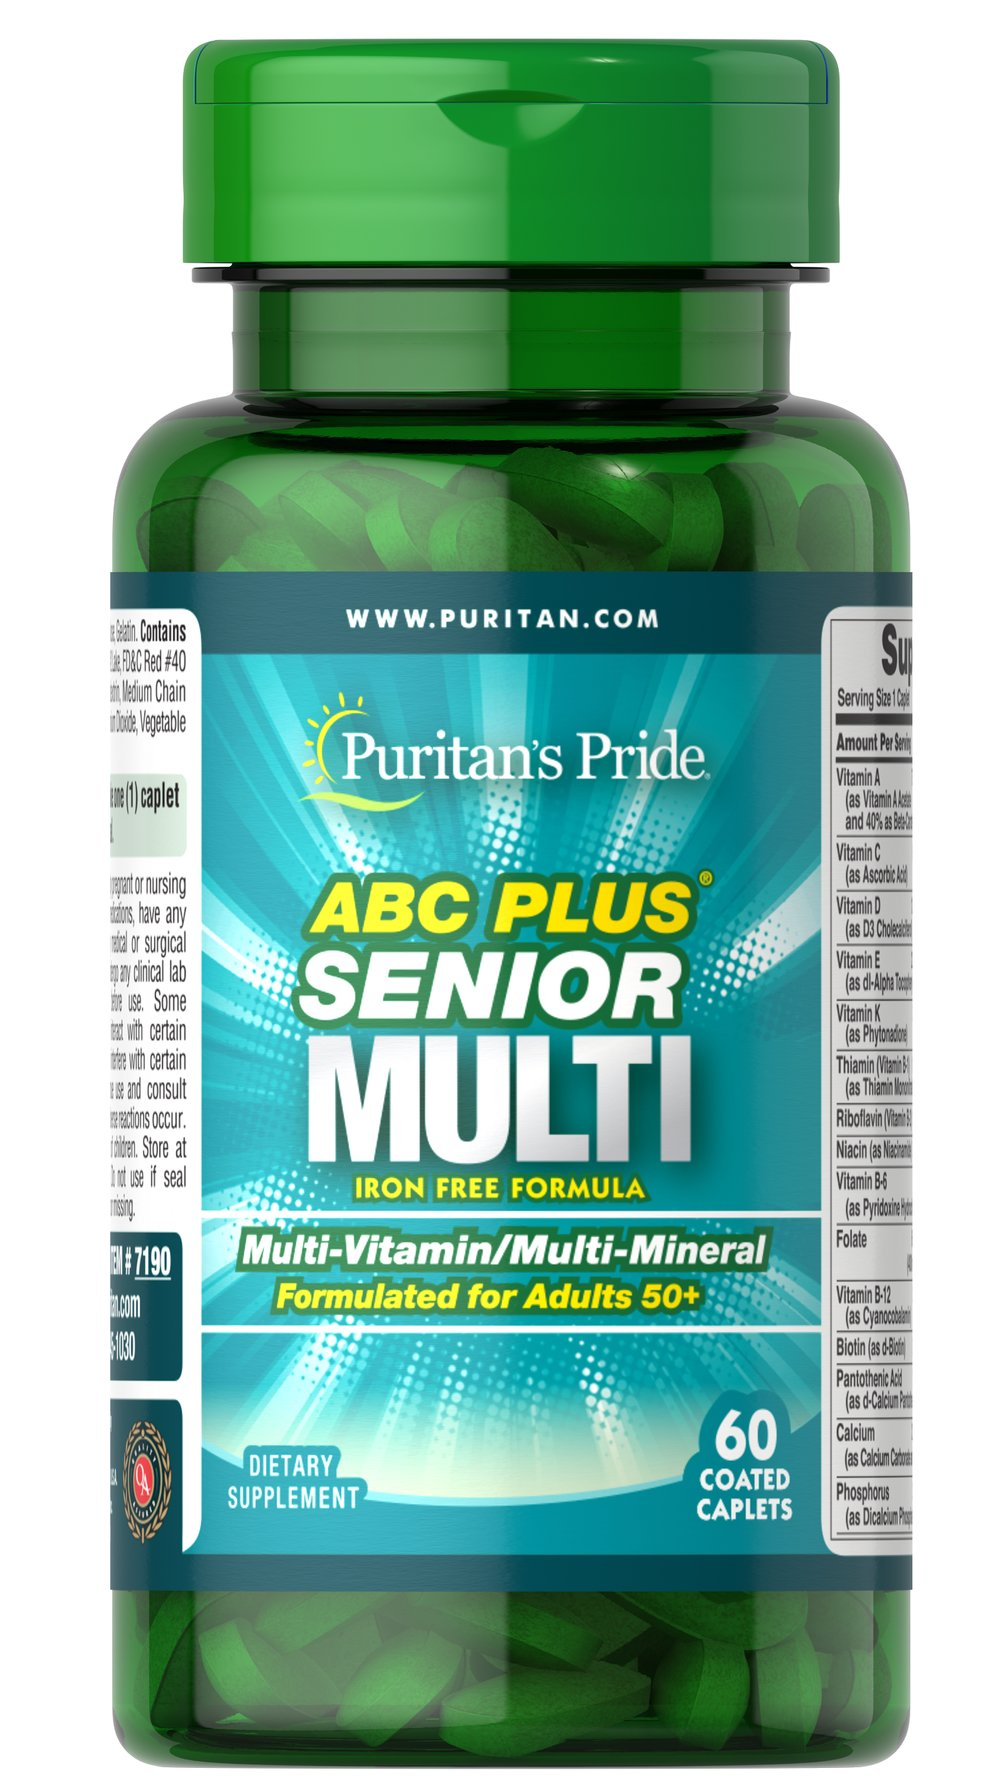 ABC Plus® Senior Multivitamin Multi-Mineral Formula <p>A special high-quality blend of vitamins and minerals formulated exclusively for adults 50 and over; delivers 100% or more daily values of Vitamins C, D, E, B-2, Niacin, Folic Acid and B-12. This is an iron-free, heart-healthy supplement.** Compare and save!</p> 60 Caplets  $9.99